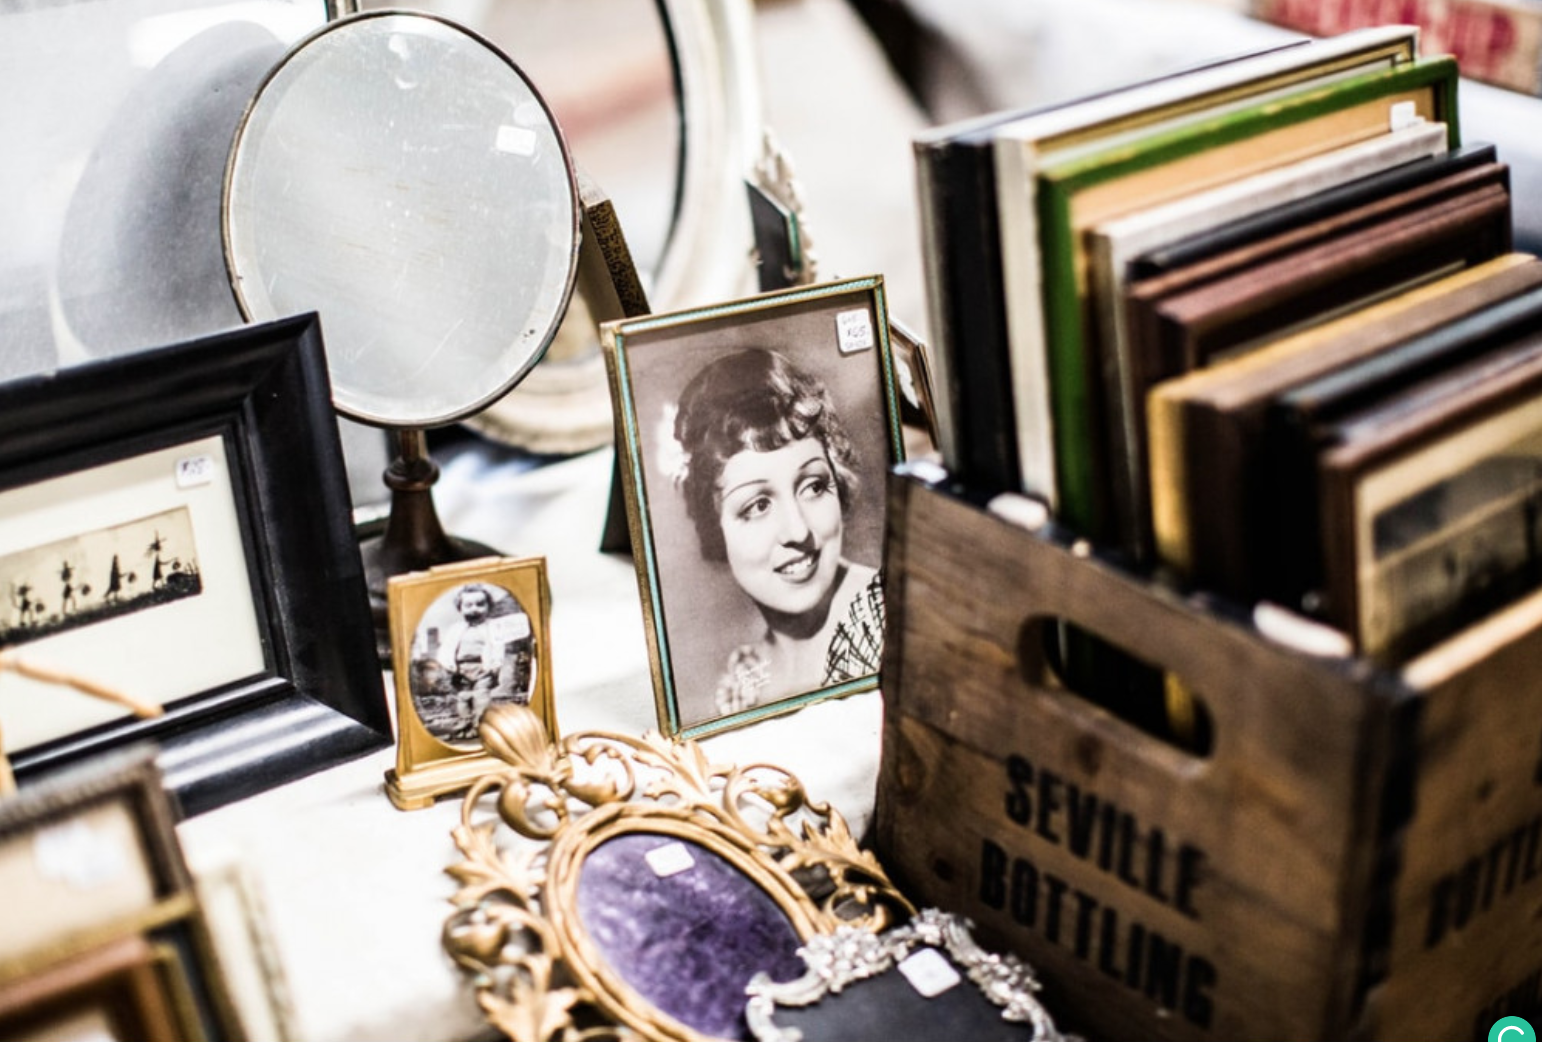 What Is the Difference Between a Garage and an Estate Sale? - Items for sale